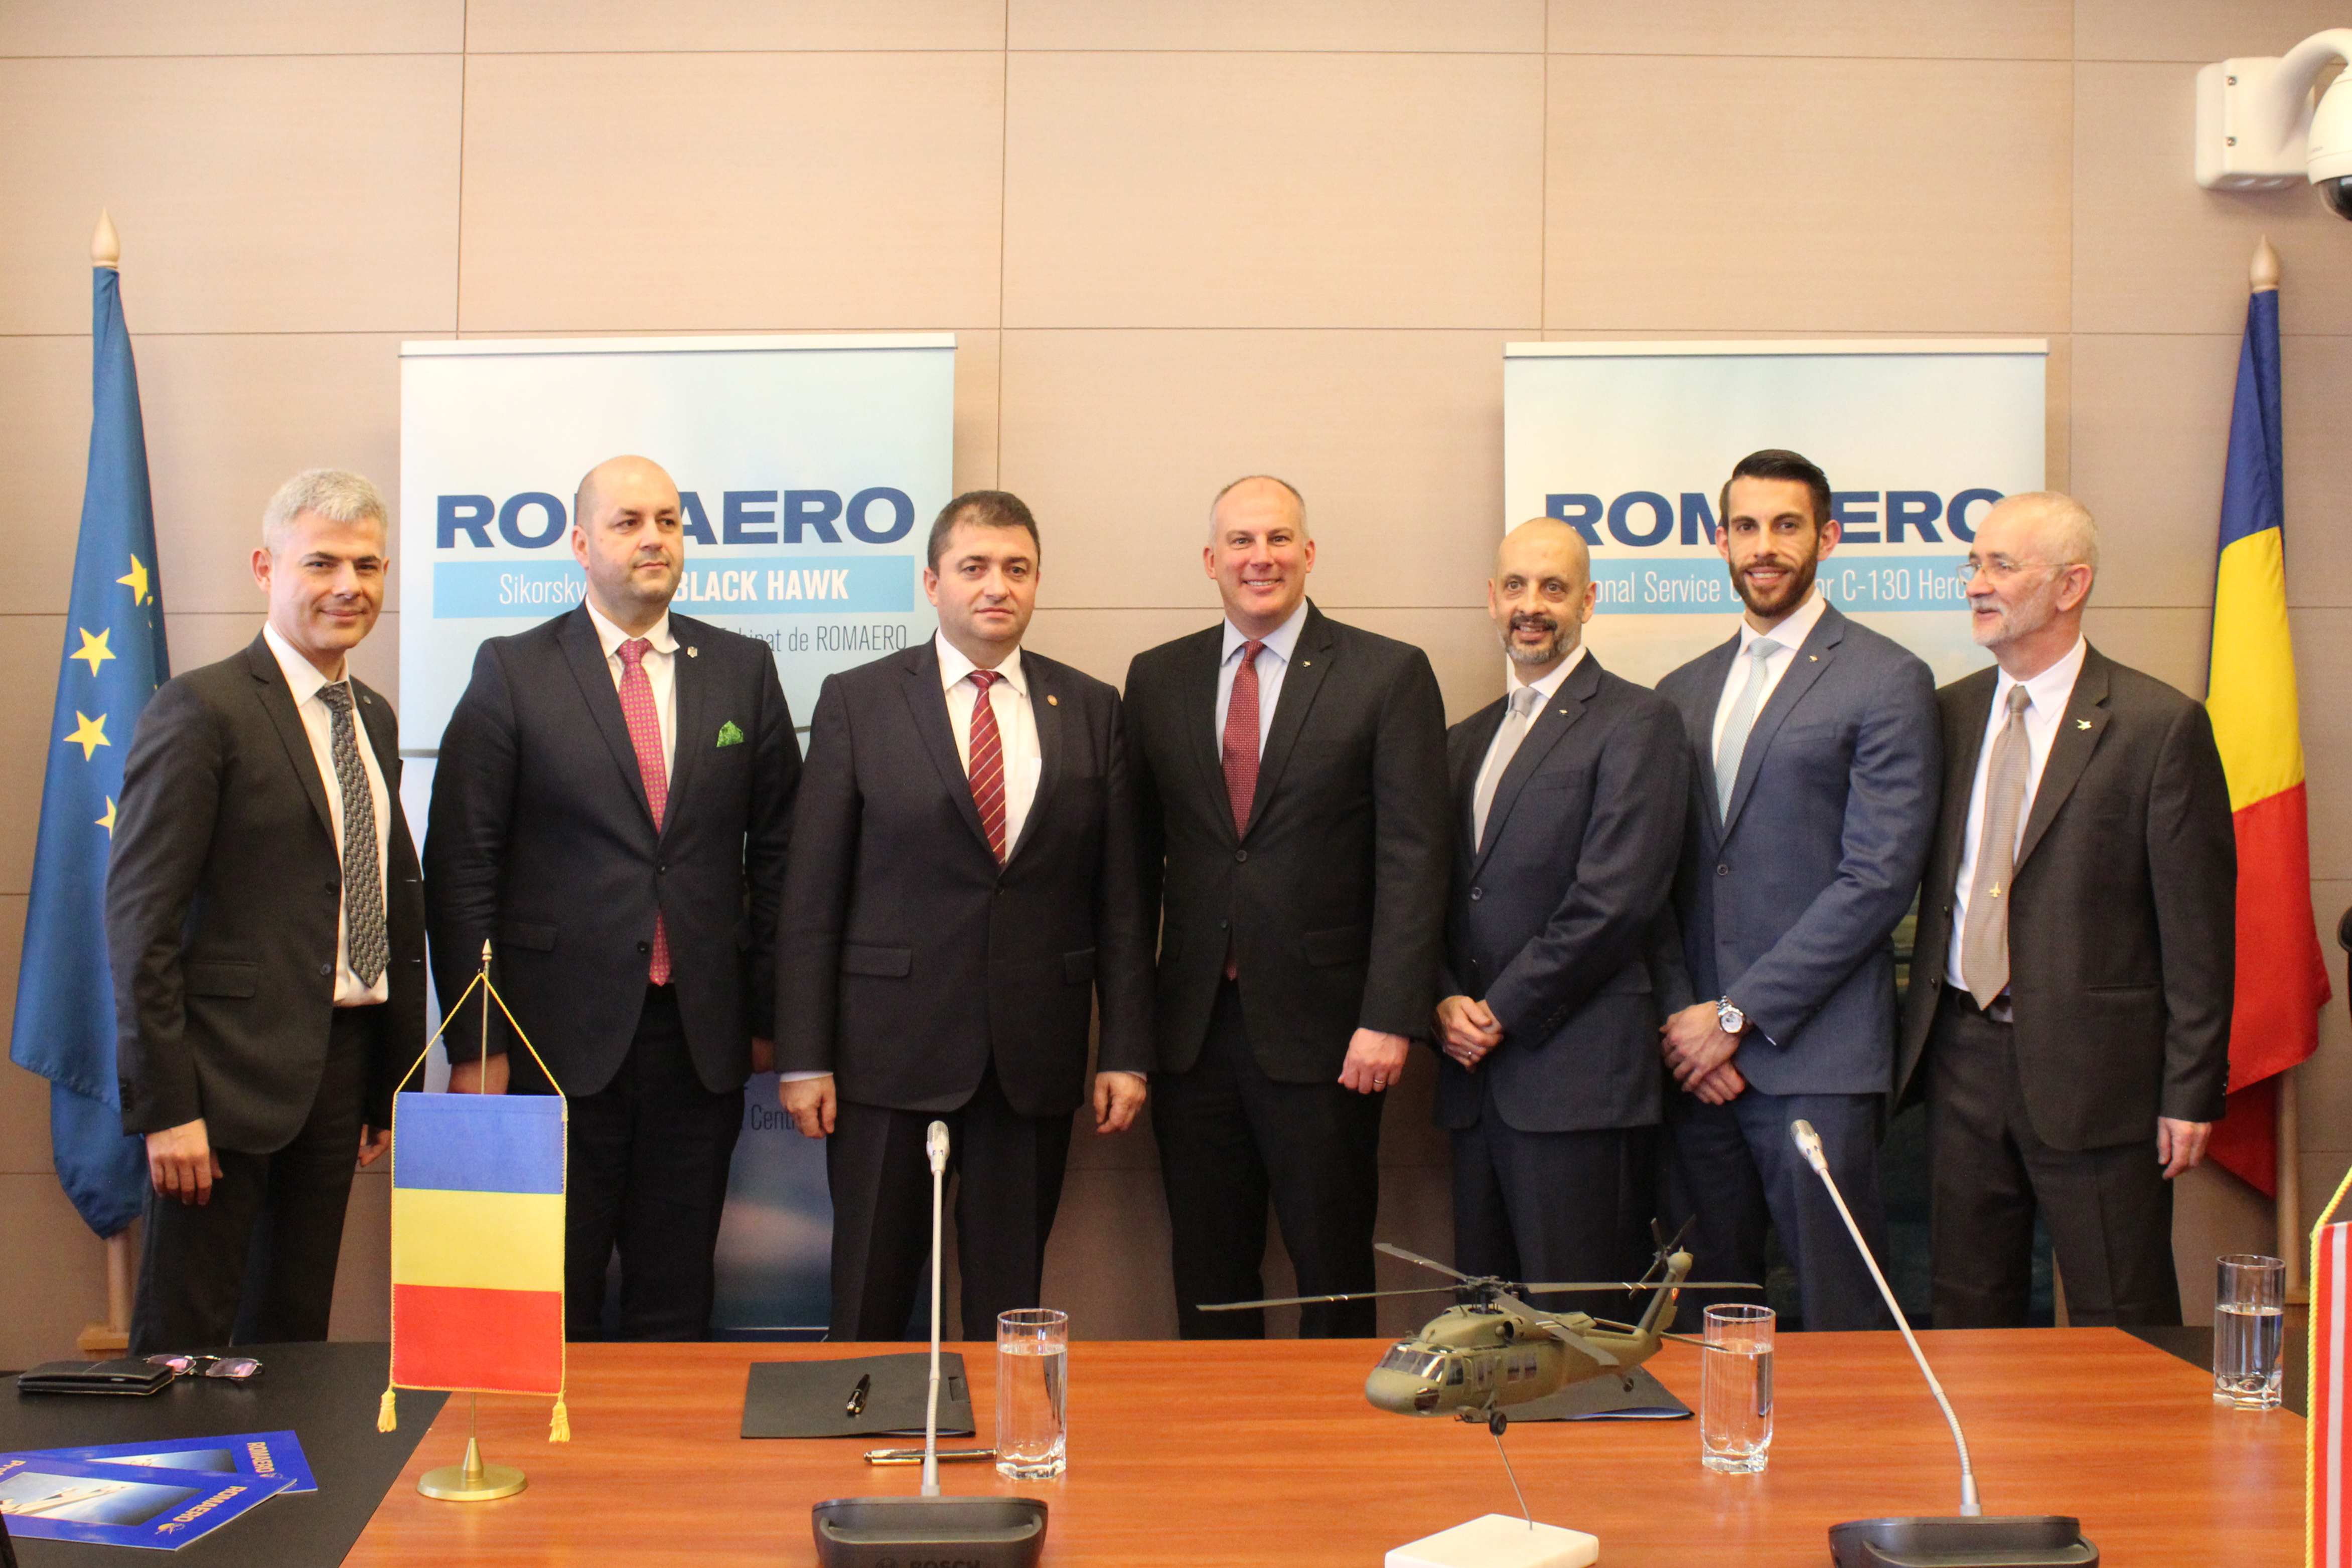 Romania to host regional equipment, maintenance center for Black Hawk helicopters